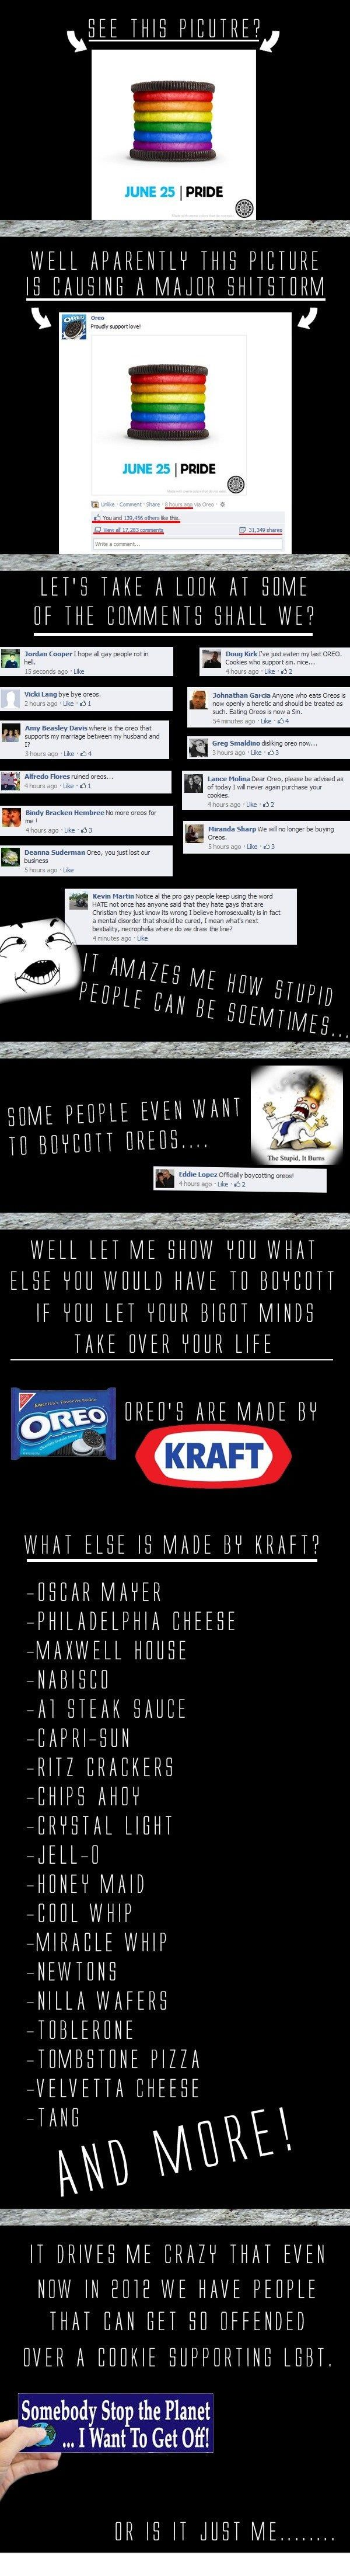 Really?? Boycotting a food becuz the makers have a different opinion then you seems a little dramatic...